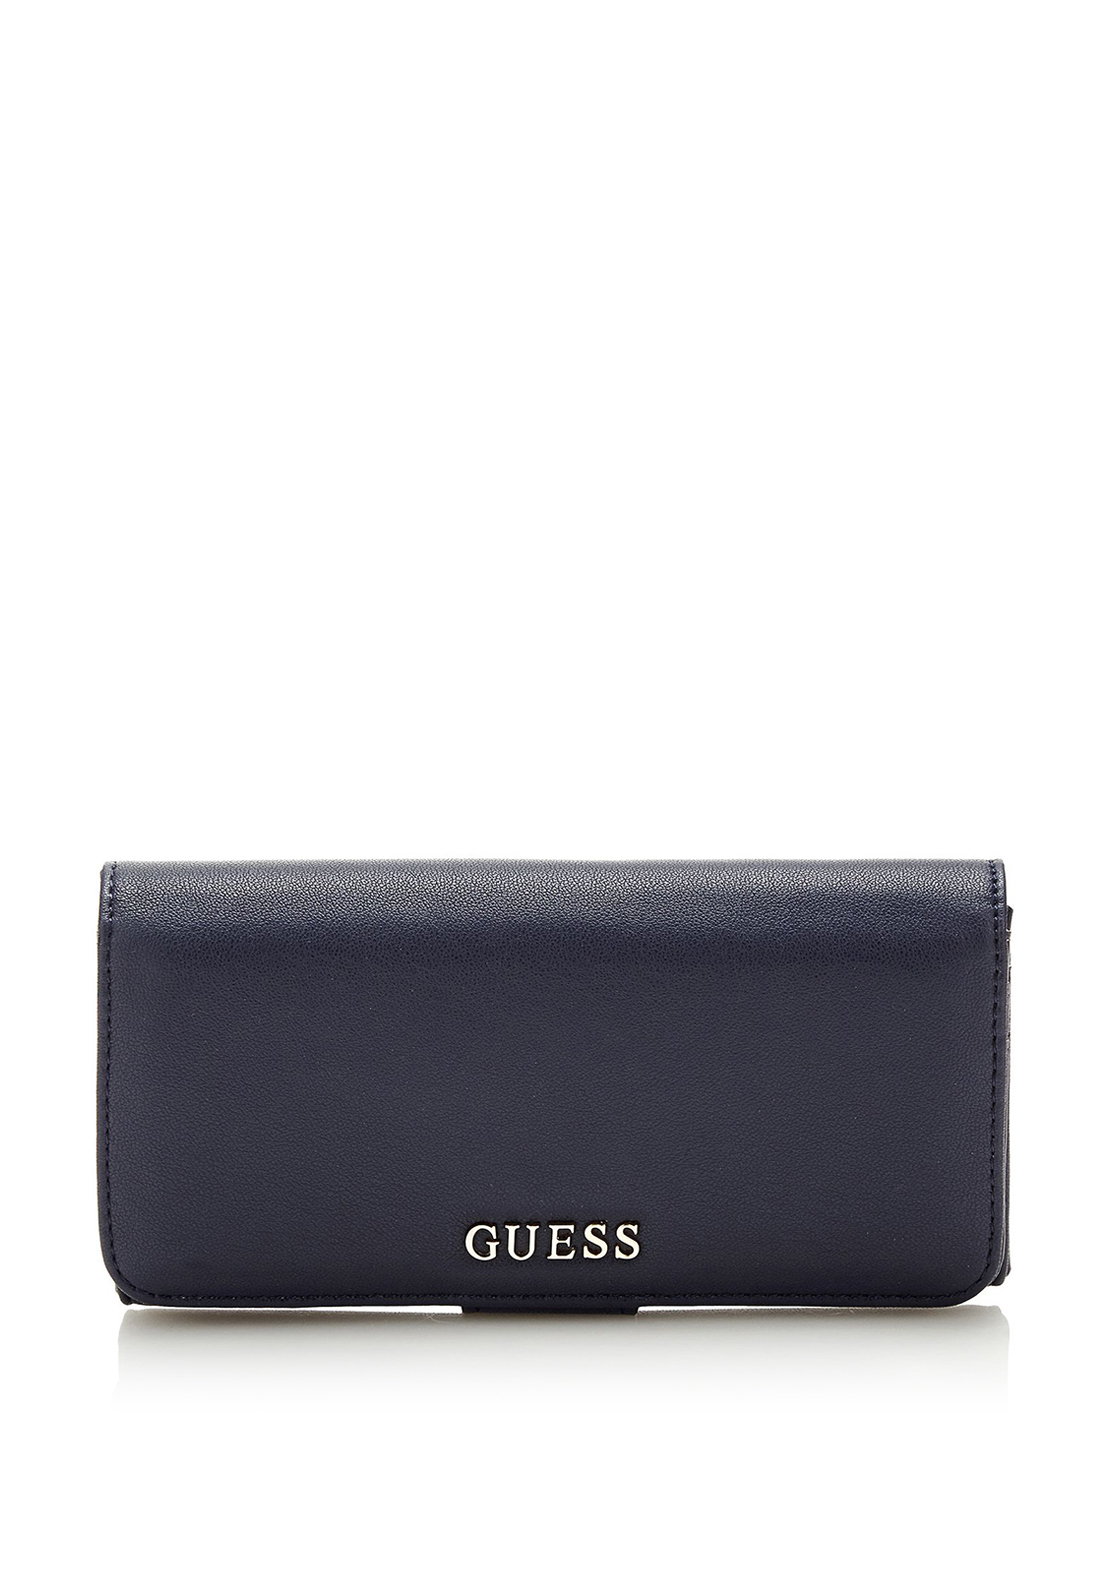 Guess Sissi Wallet, Navy